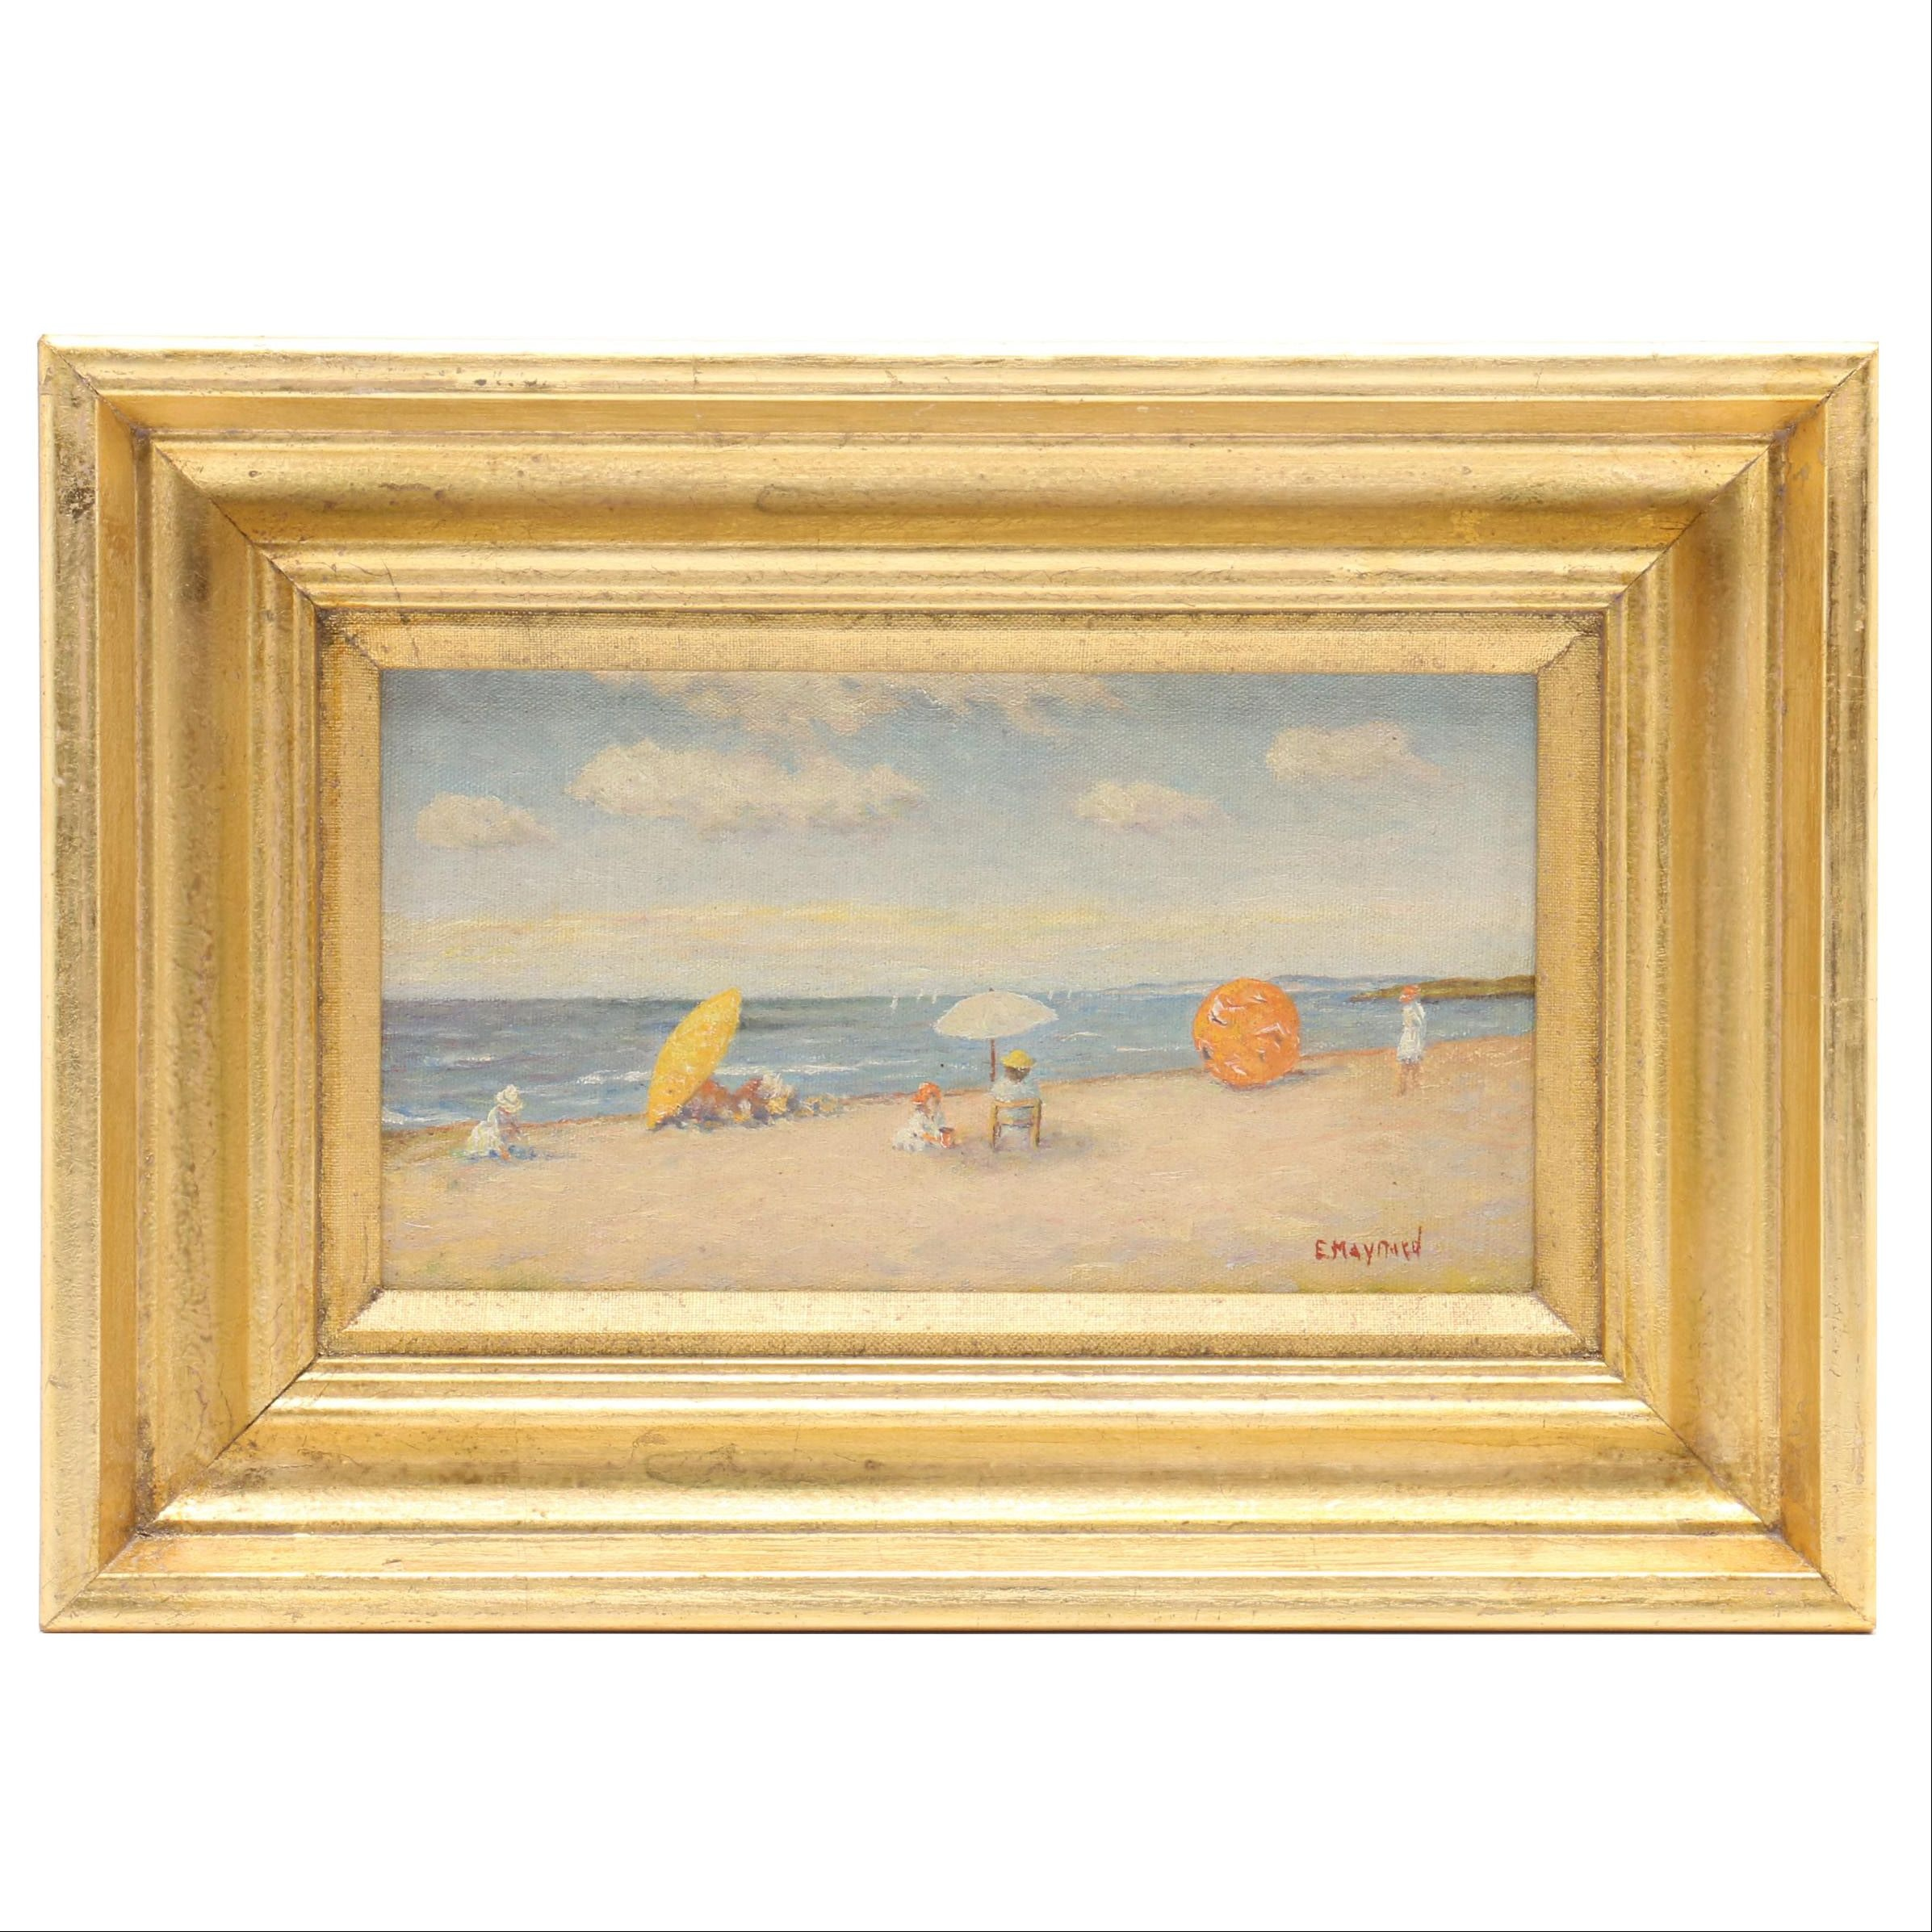 Edwin Maynard Oil Painting of Figures on the Shore